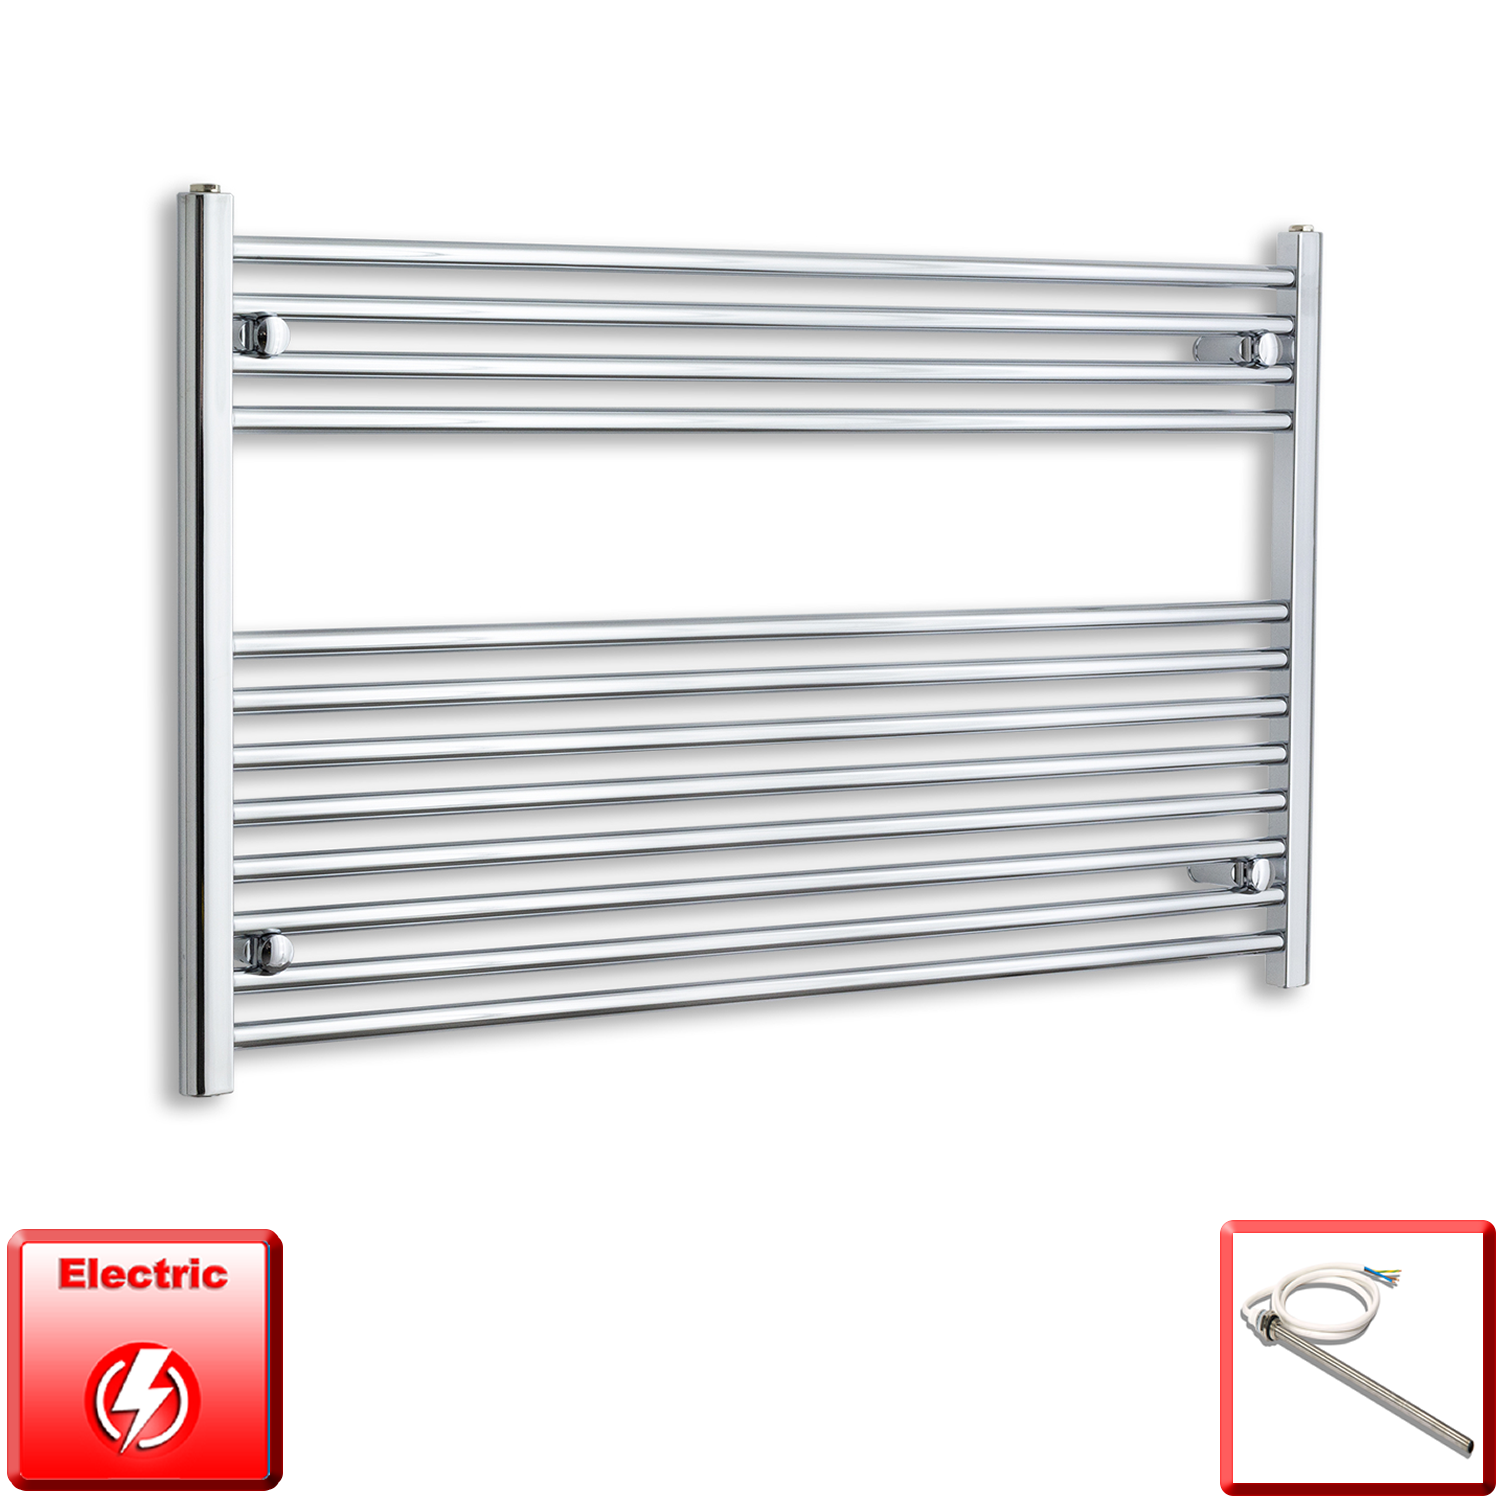 1200mm Wide 700mm High Pre-Filled Chrome Electric Towel Rail Radiator With Single Heat Element